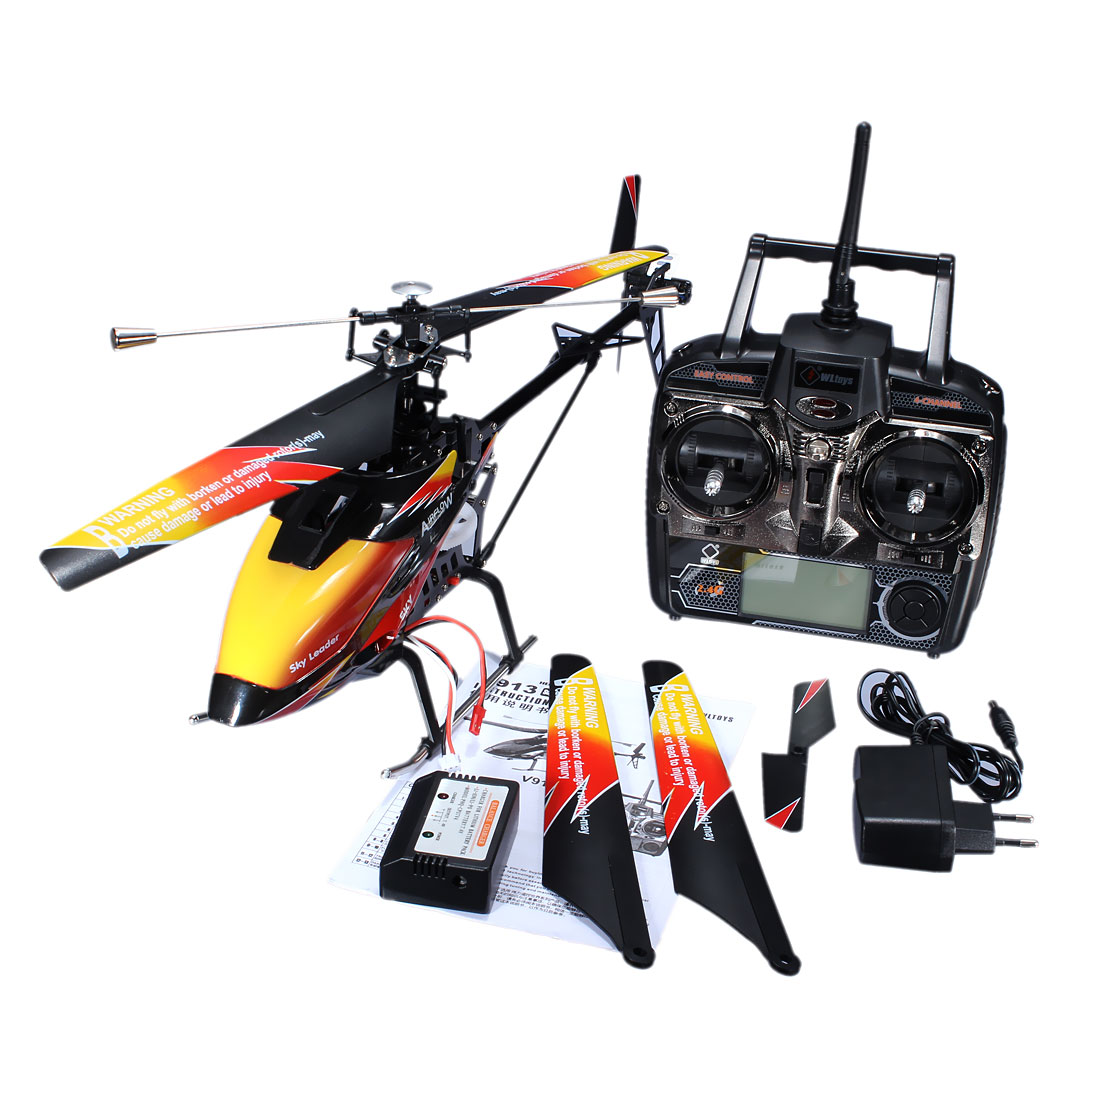 High Quality WLtoys V913 Brushless Version 2.4G 4CH RC Helicopter RTF v913 spare part kits canopies main blades main blades for wltoys v913 rc helicopter free shipping